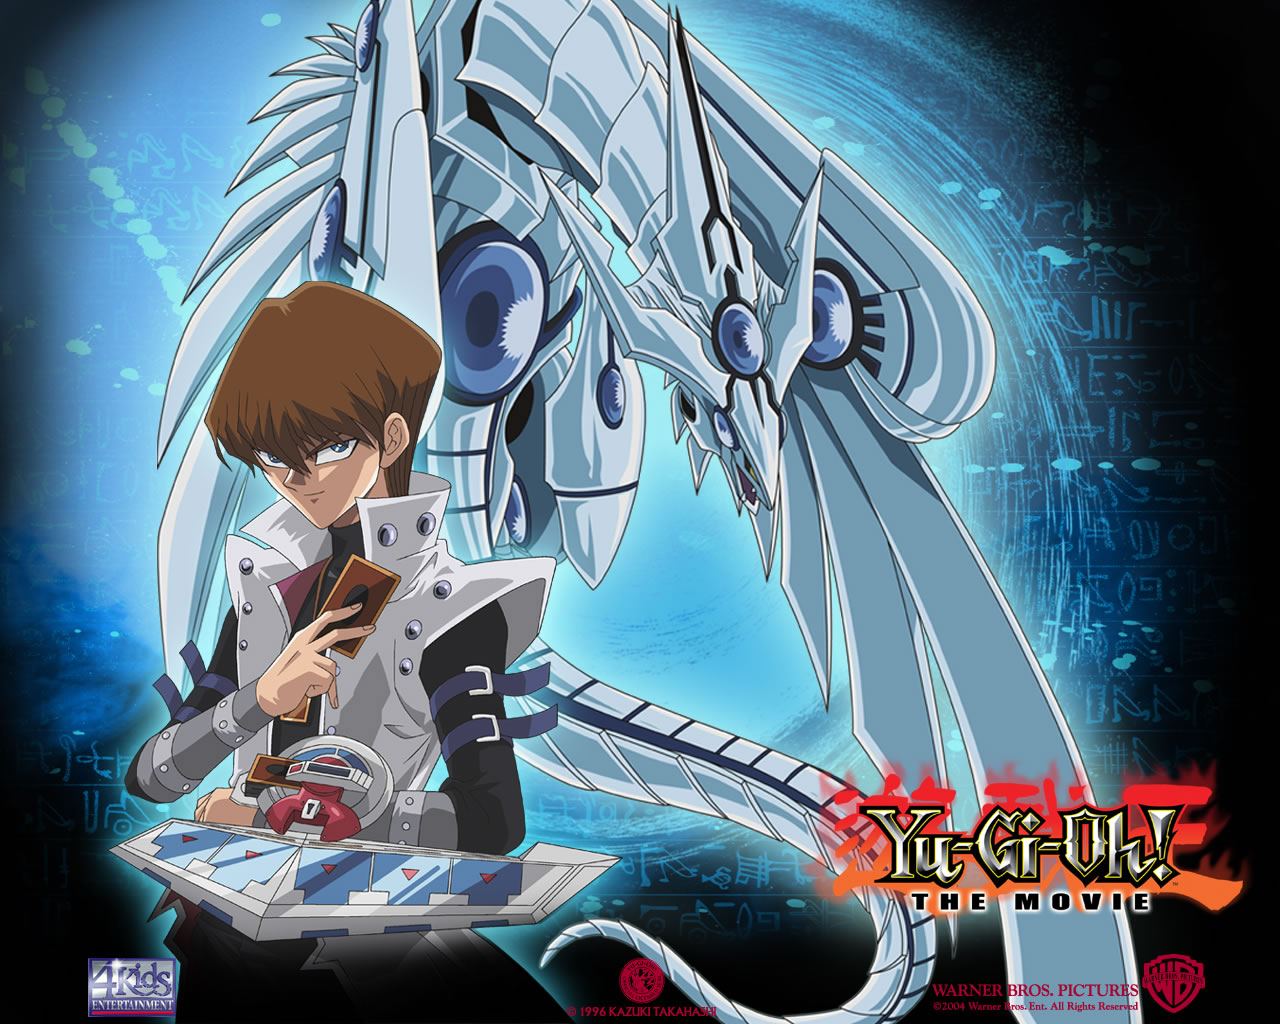 The Hotest YuGiOh trading